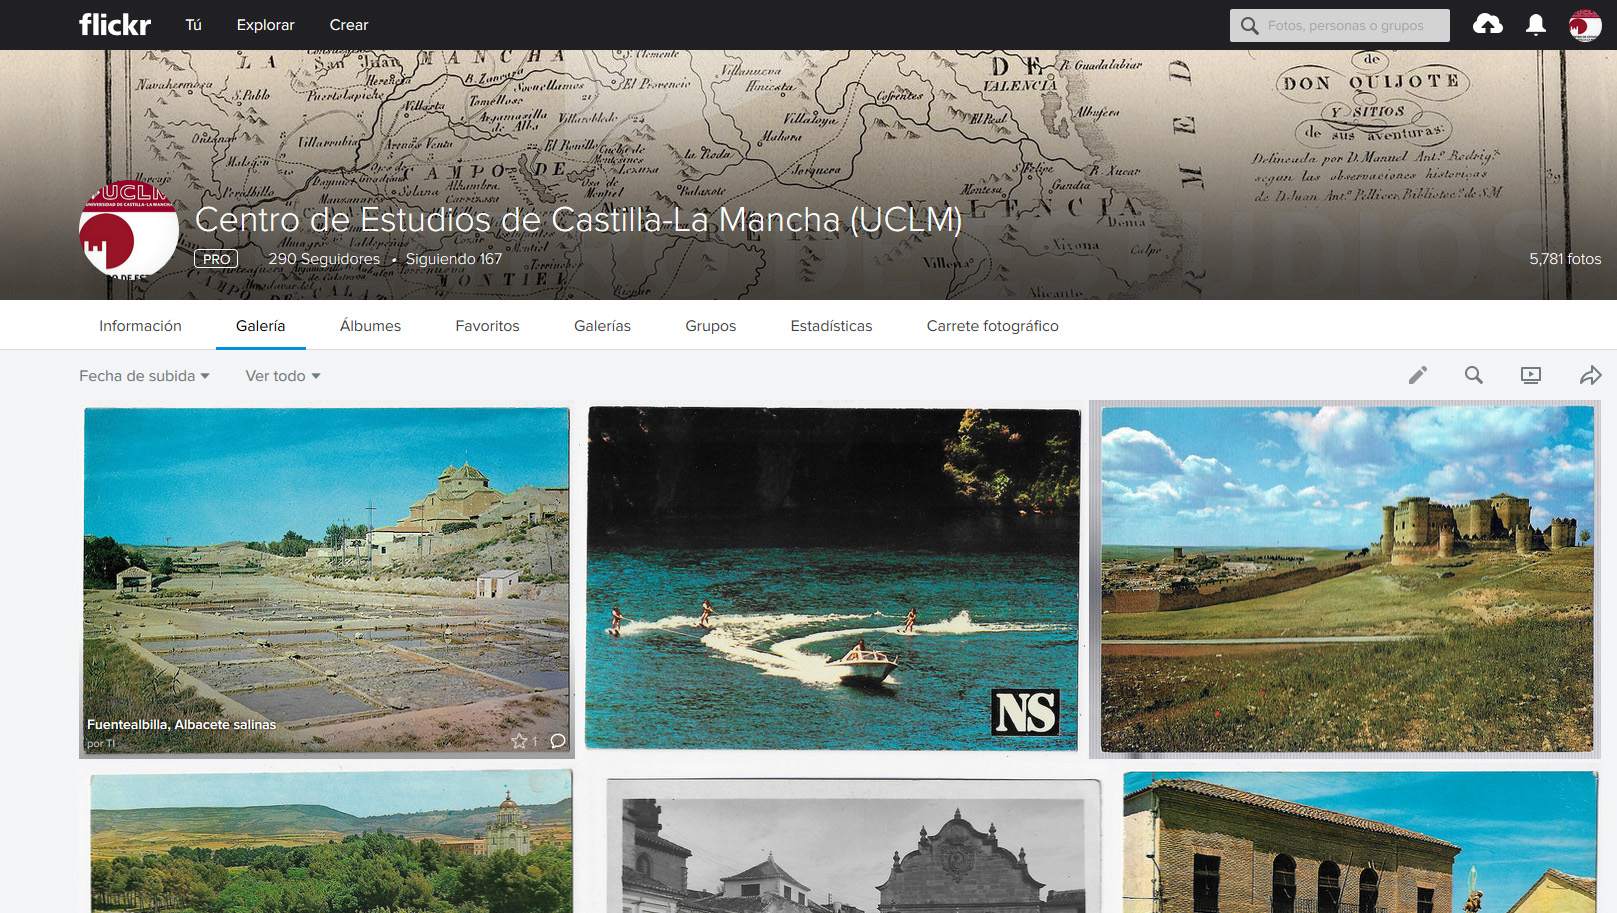 El CECLM en Flickr